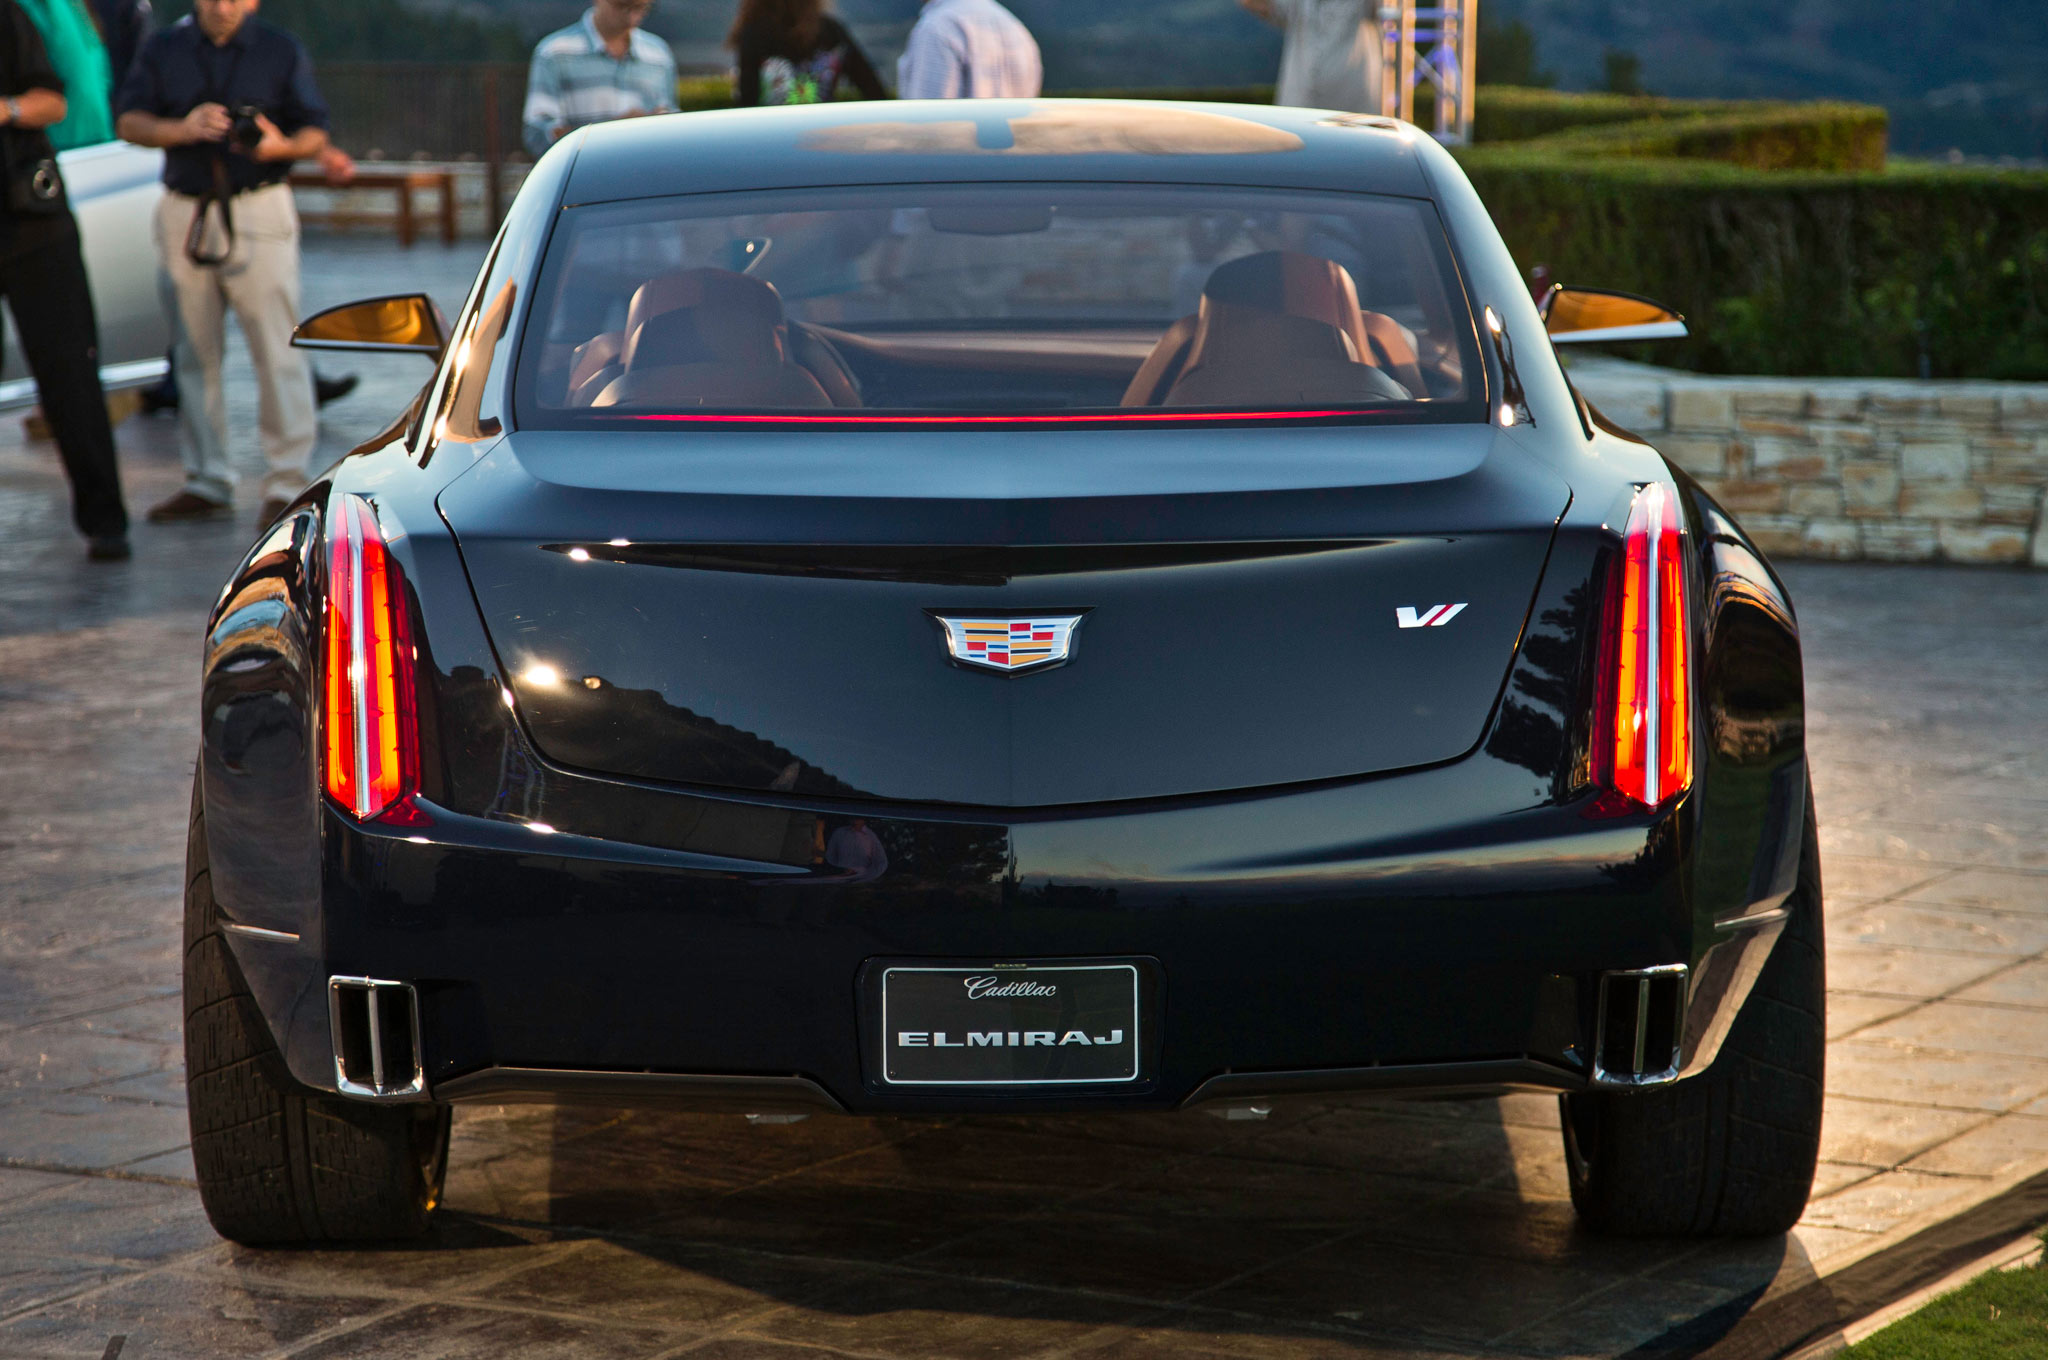 2013 Cadillac Elmiraj Concept Revealed at Pebble Beach ...